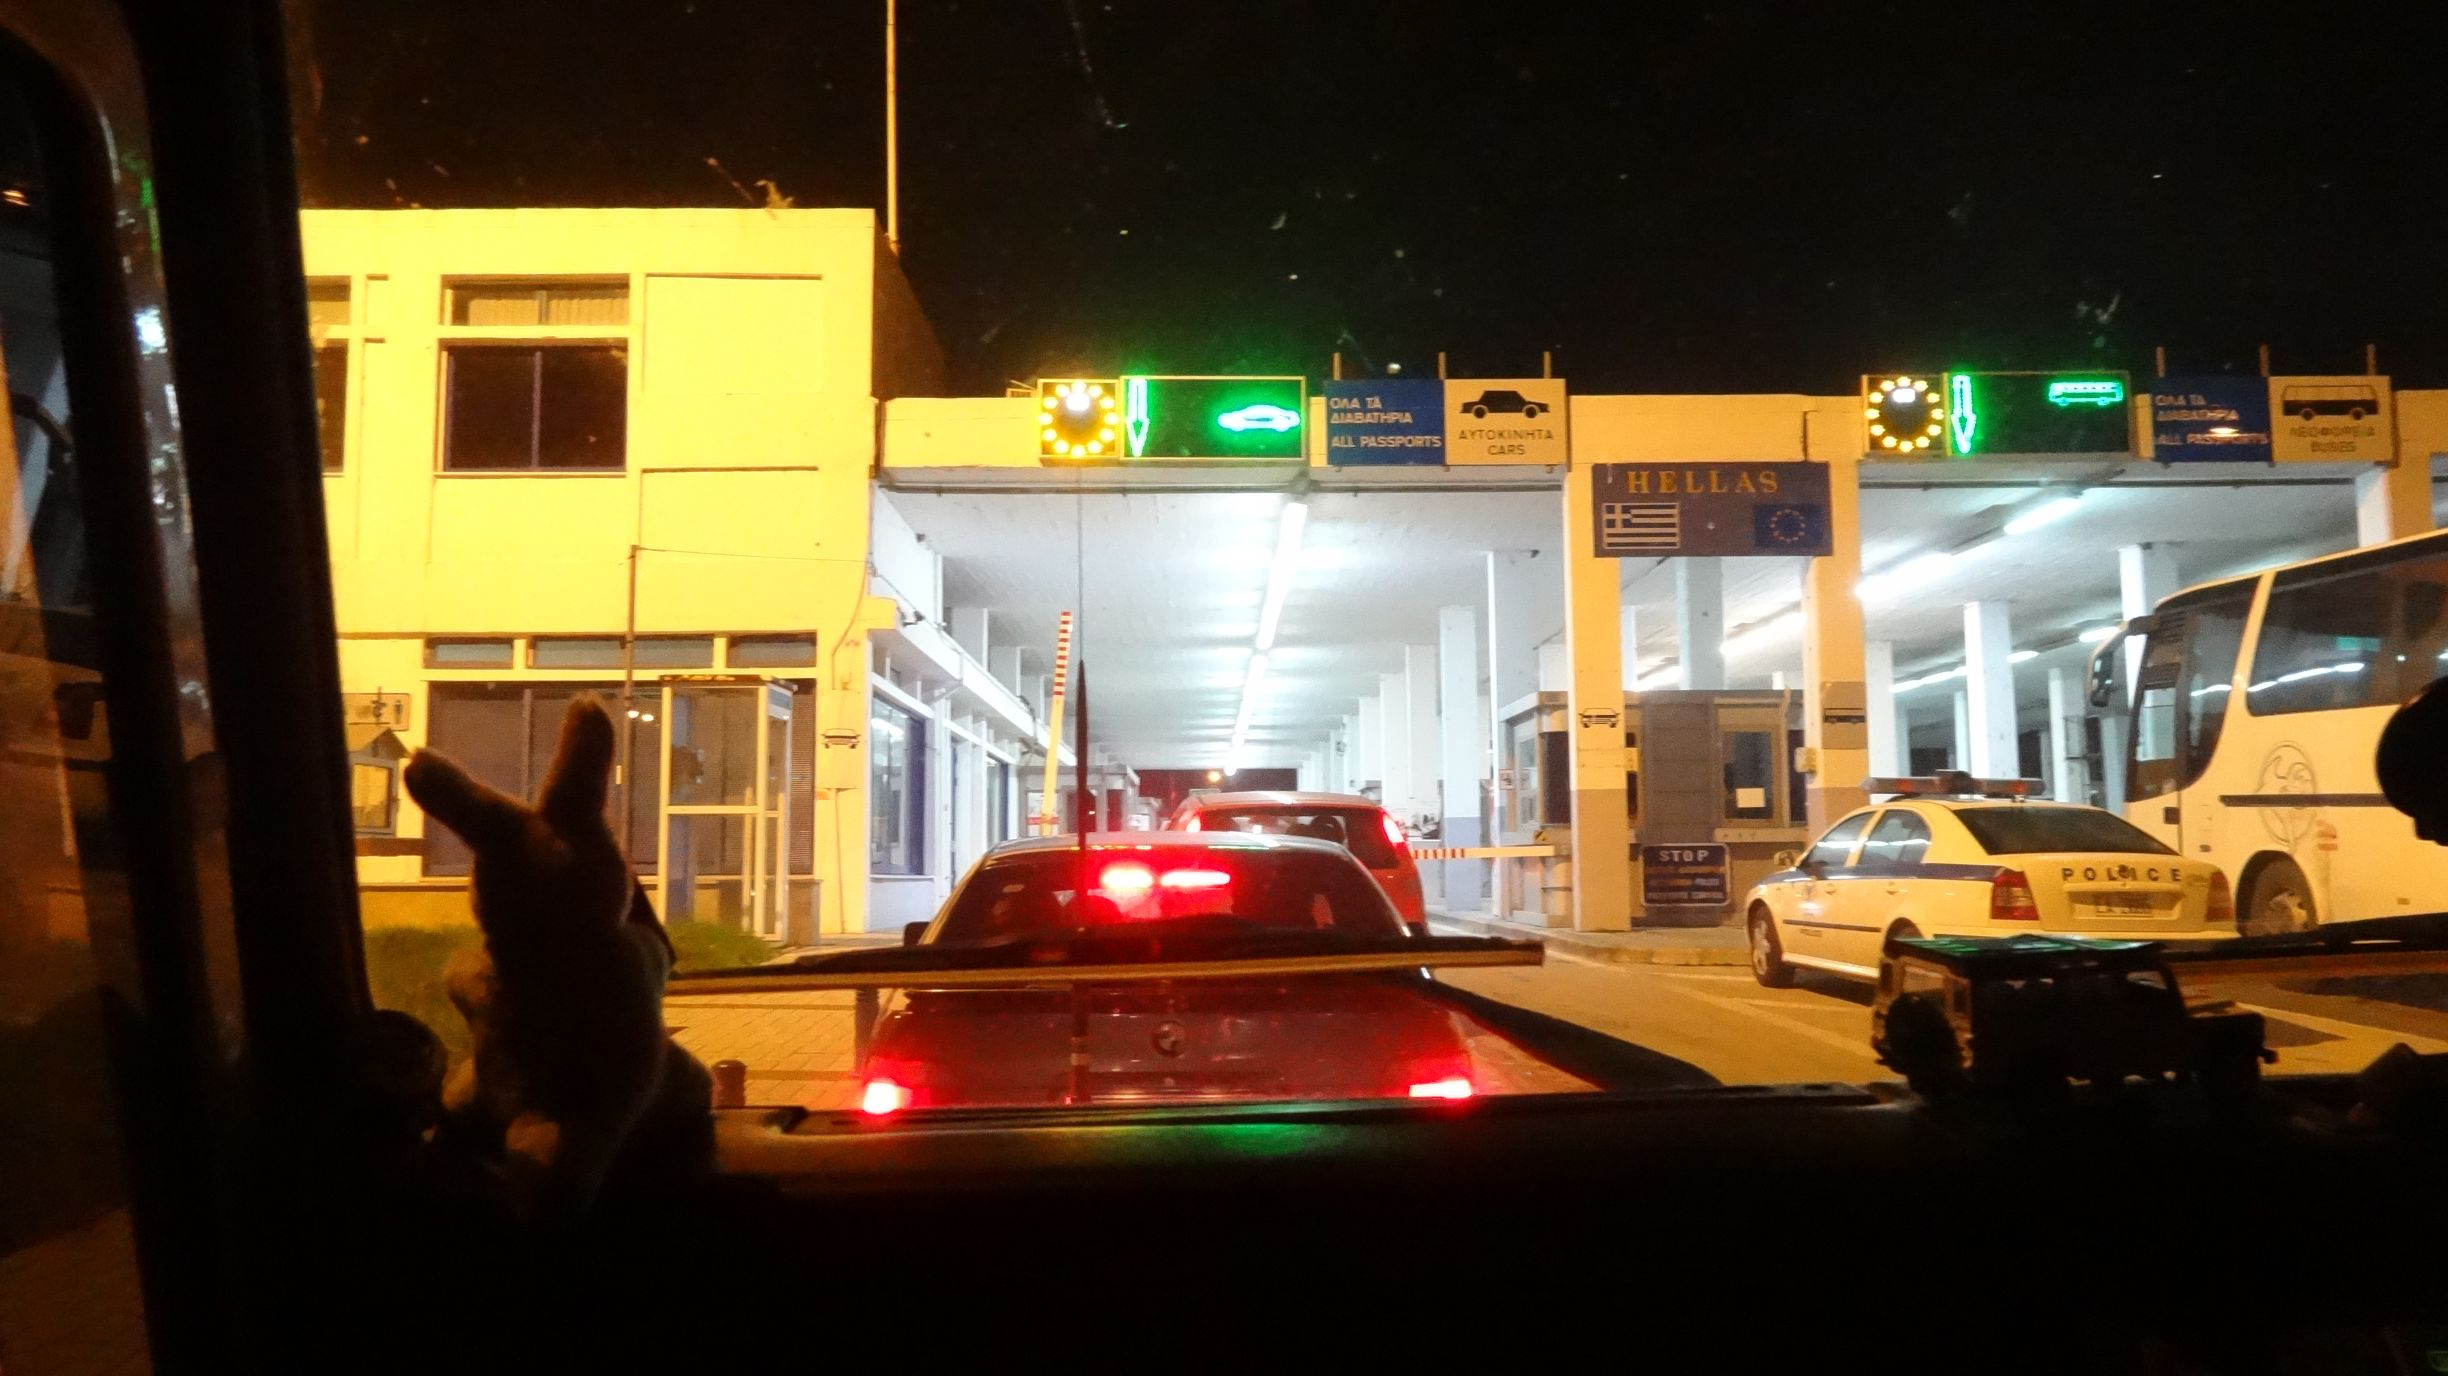 crossing into the European Union at last (border Turkey with Greece)